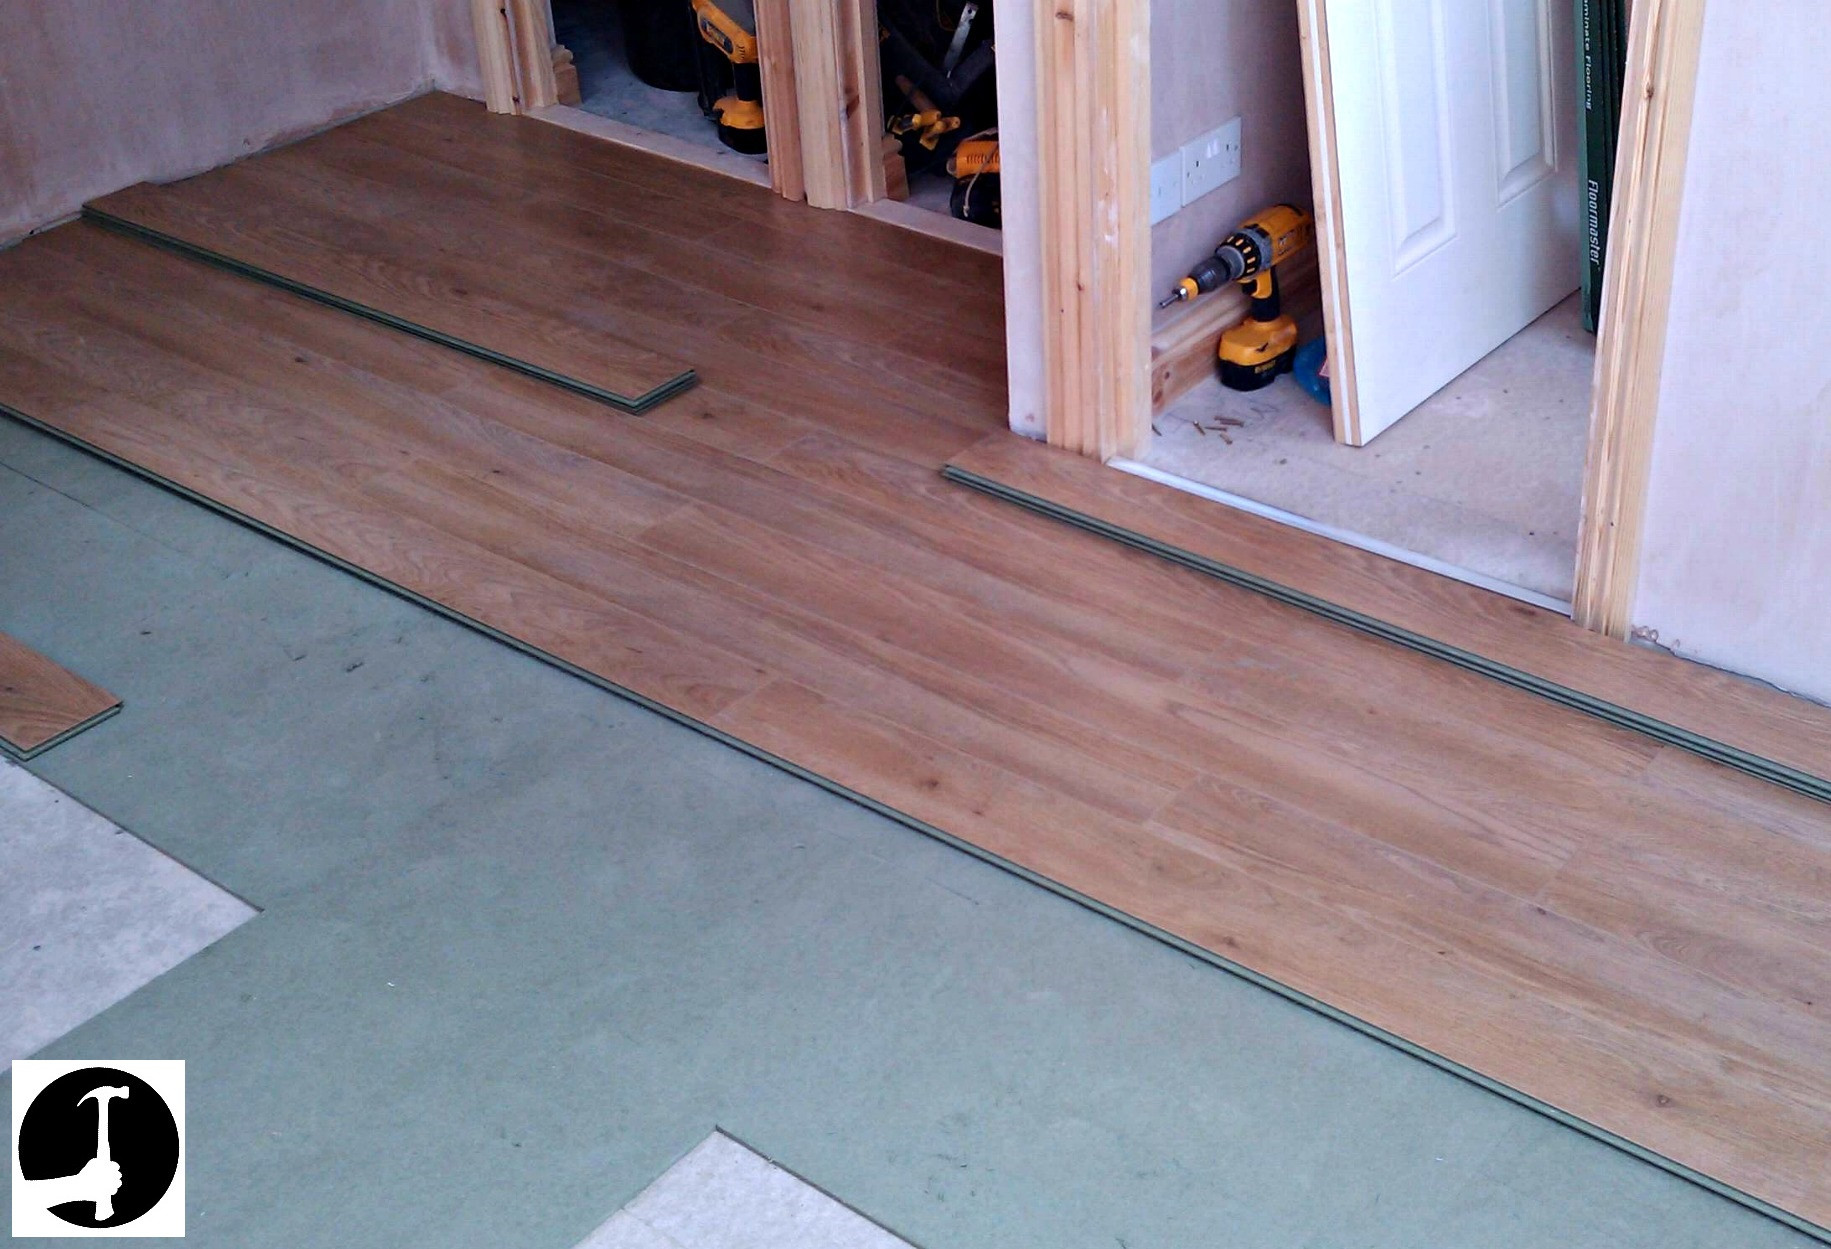 how to put hardwood floor on concrete of how to install laminate flooring with ease glued glue less systems within laminate started